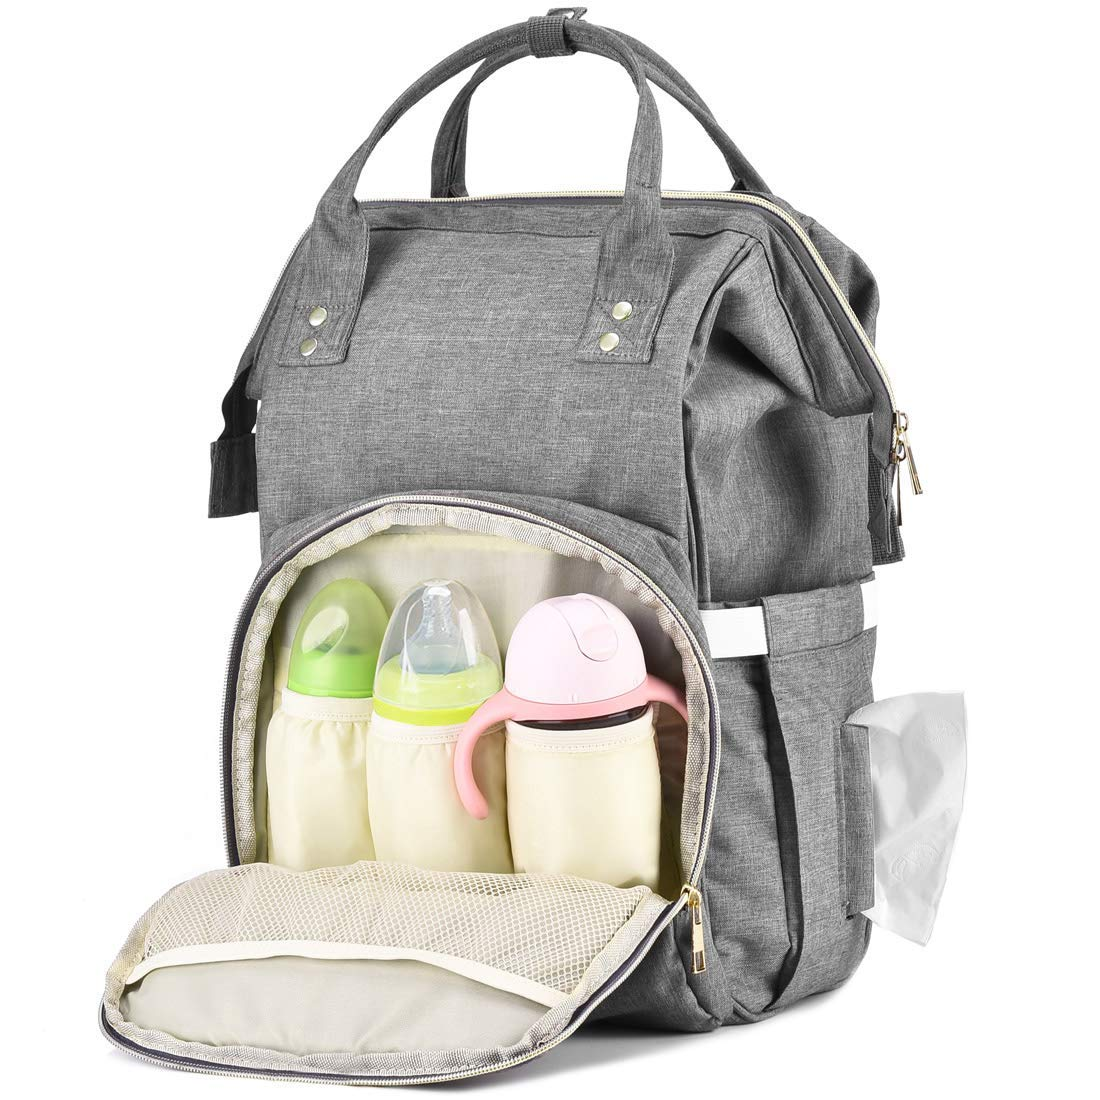 EFFORTLE Baby Diaper Bag Backpack Practical Storage Units Large Capacity Nappy Bags Stylish Diaper Bag Organizer by EFFORTLE